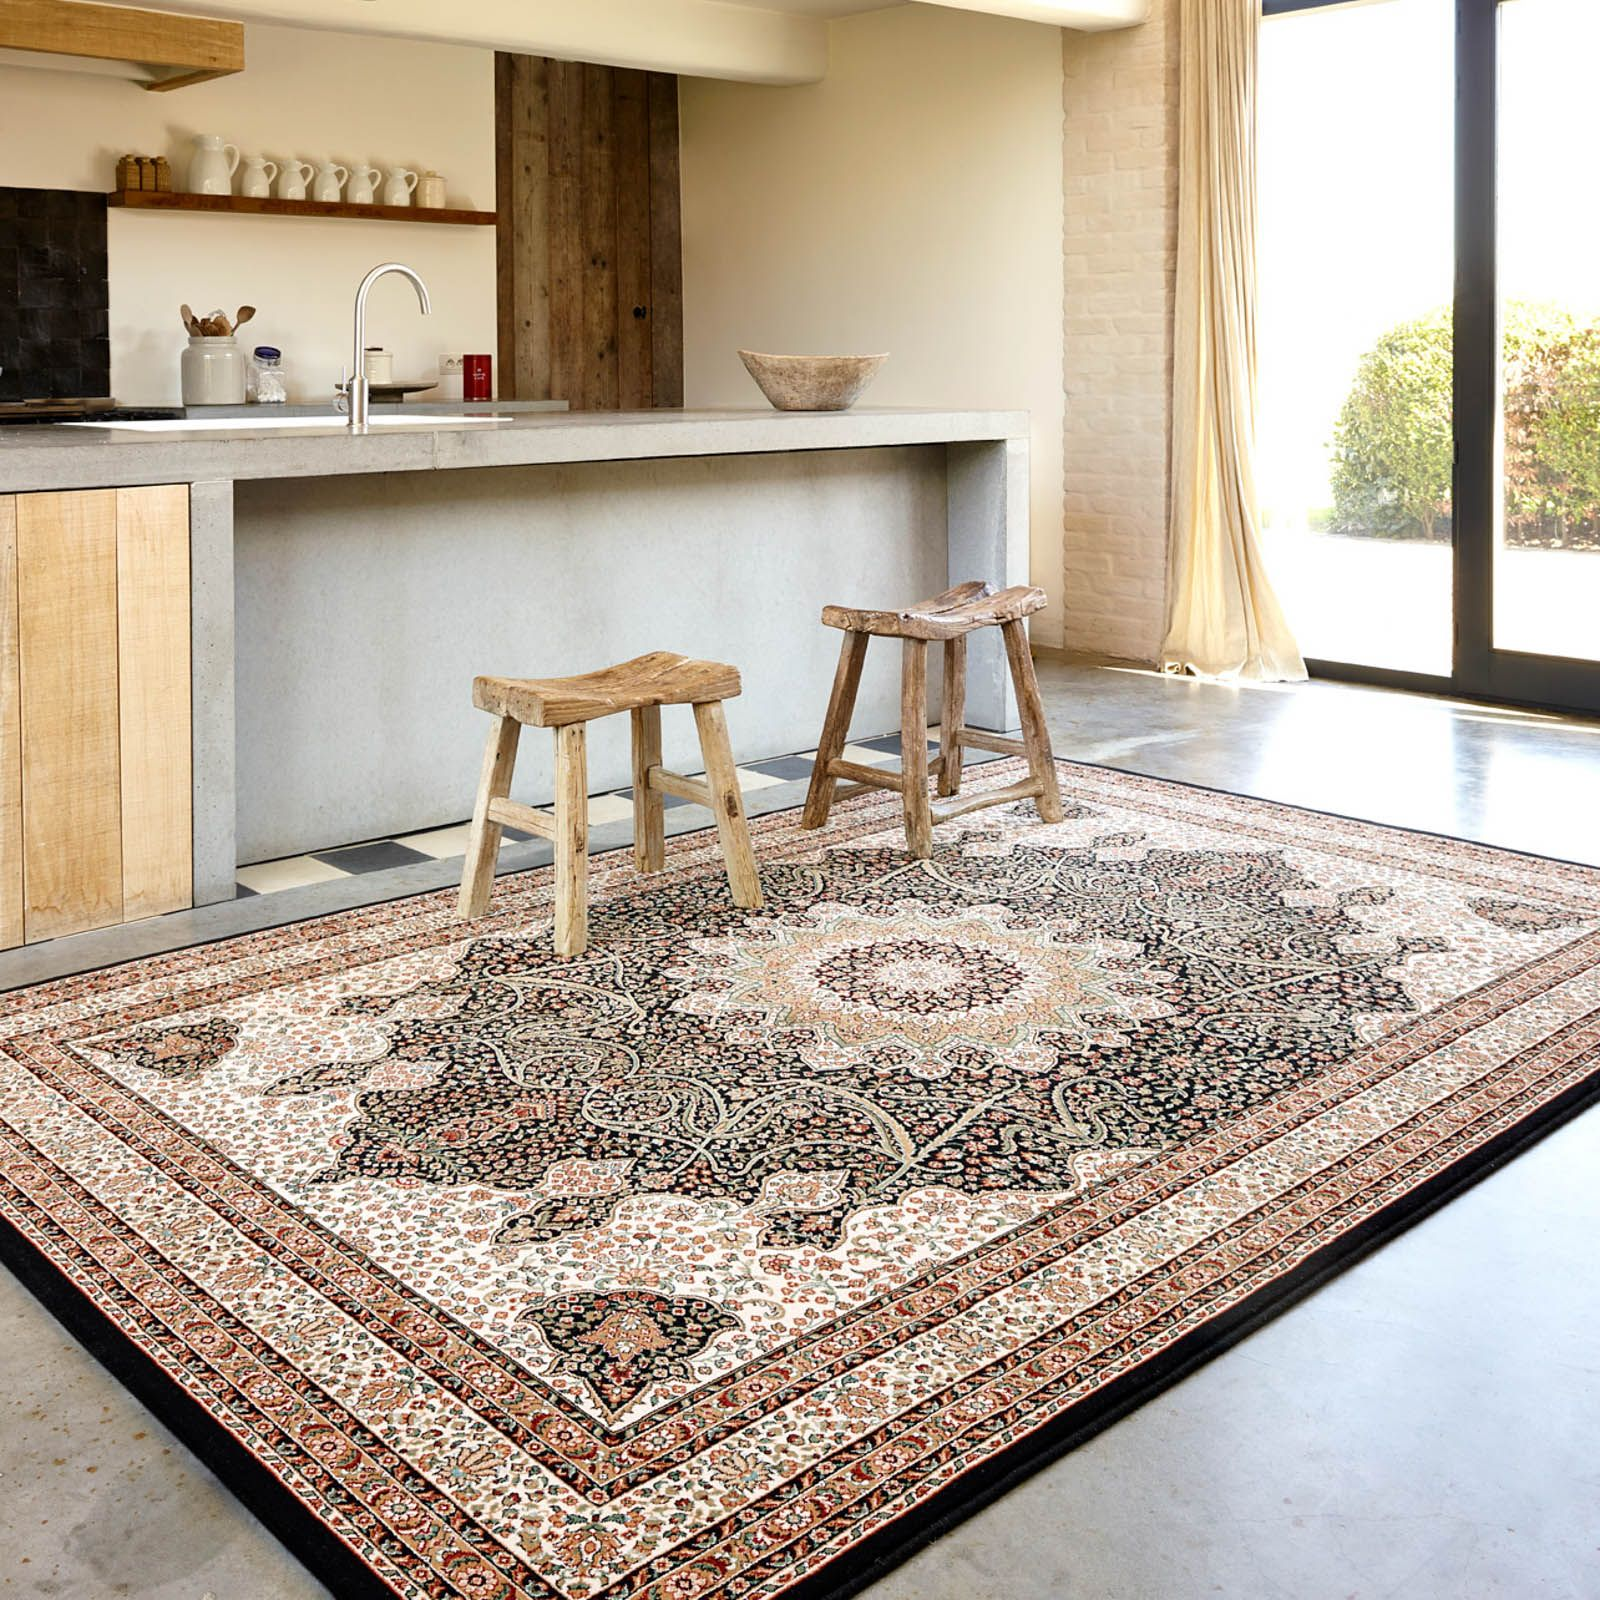 Nain Rugs 1285 678 In Navy By Lano Free Uk Delivery Rugs Traditional Rugs Nain Rugs